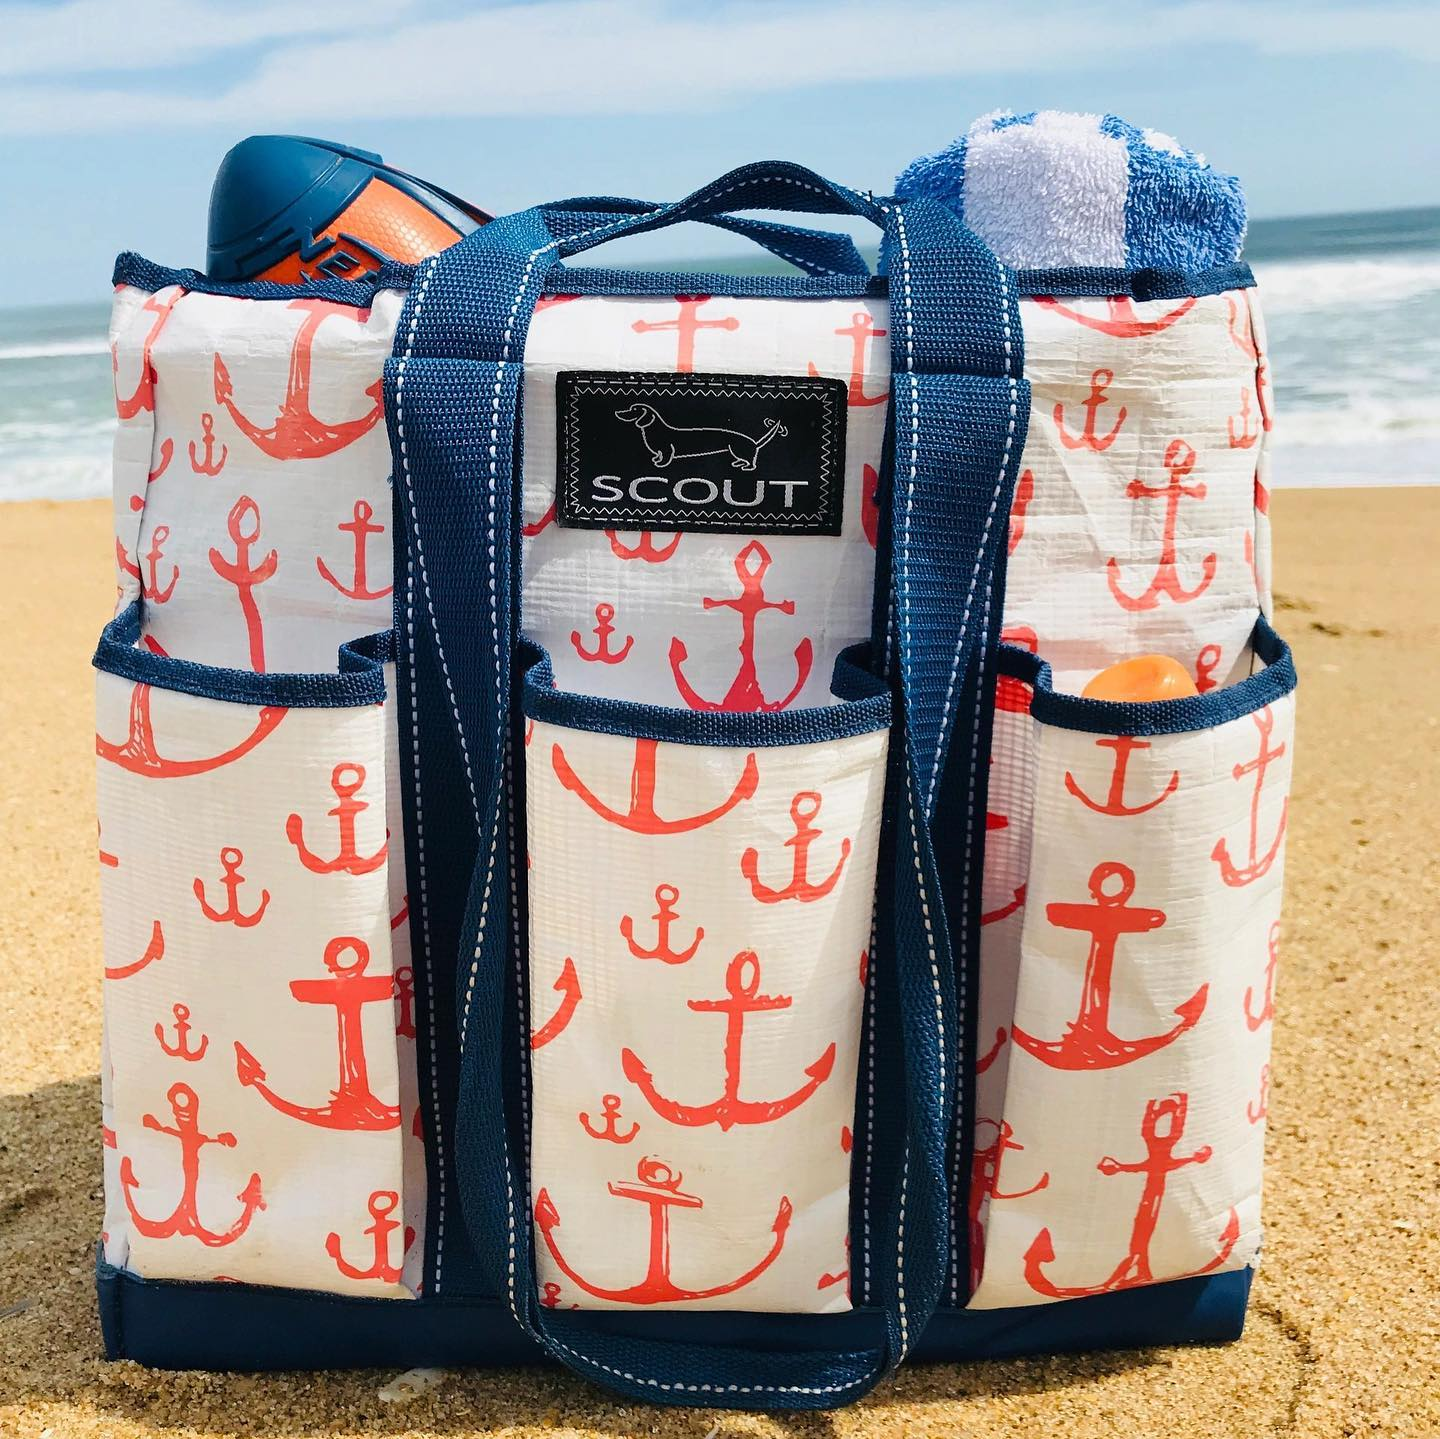 43d094390b2fe Tote Bags, Lunch Coolers, Pool Bags & More! | SCOUT Bags